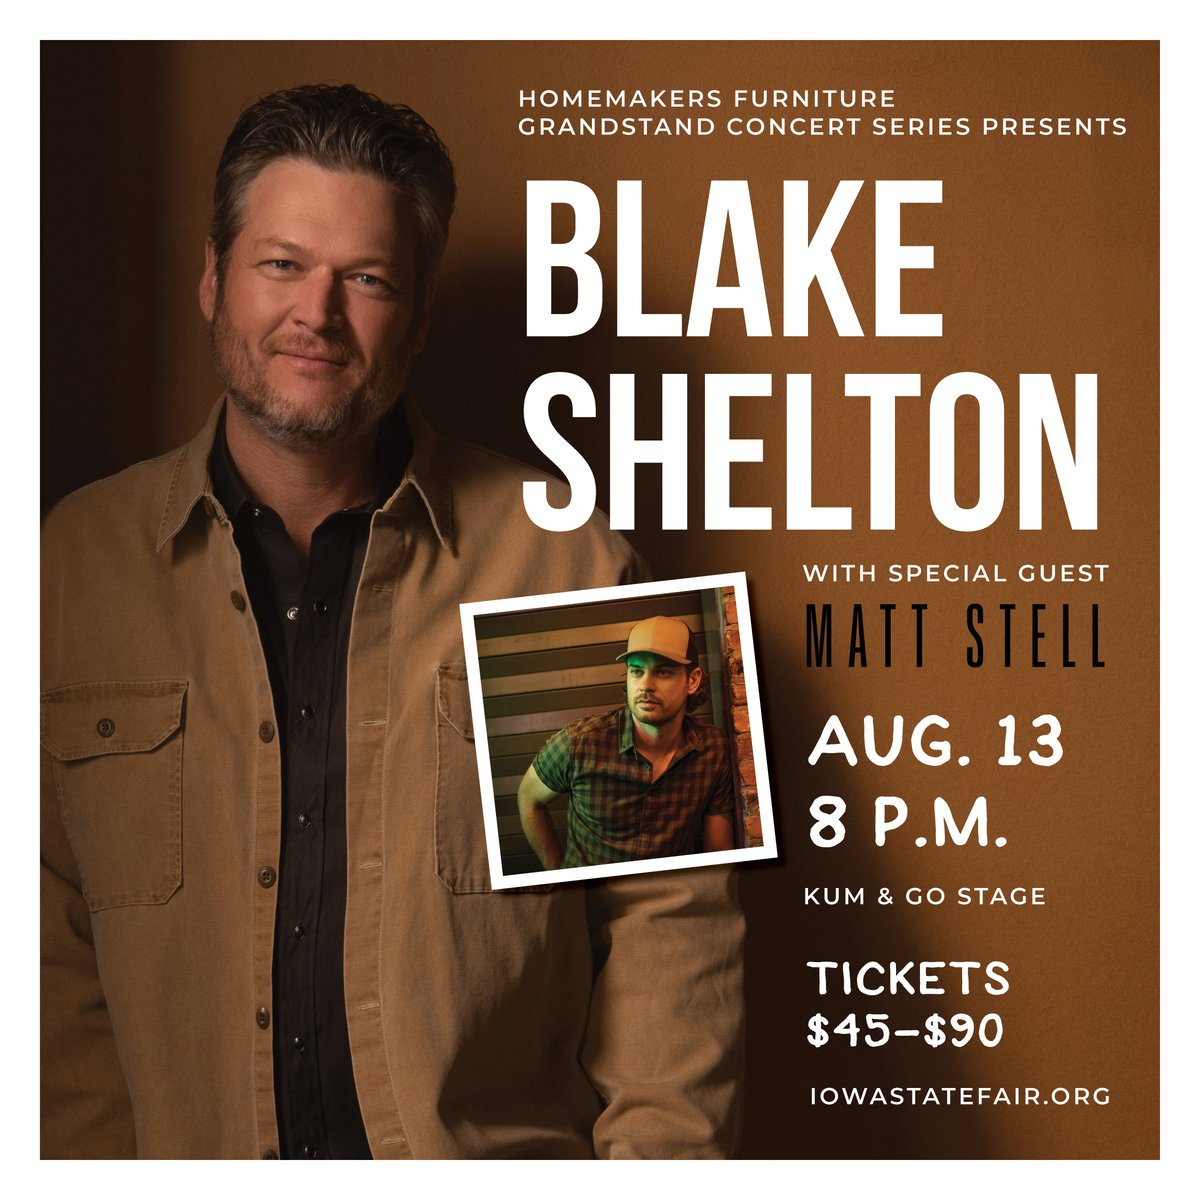 Excited to announce our first new concert of 2021 with @blakeshelton and special guest @MattStellMusic! 🎸🤠 They'll take the Kum & Go Stage on Aug. 13 at 8 p.m. Tickets go on sale this Friday, January 8 at 10 a.m. Visit  for more info! #Grandstand2021